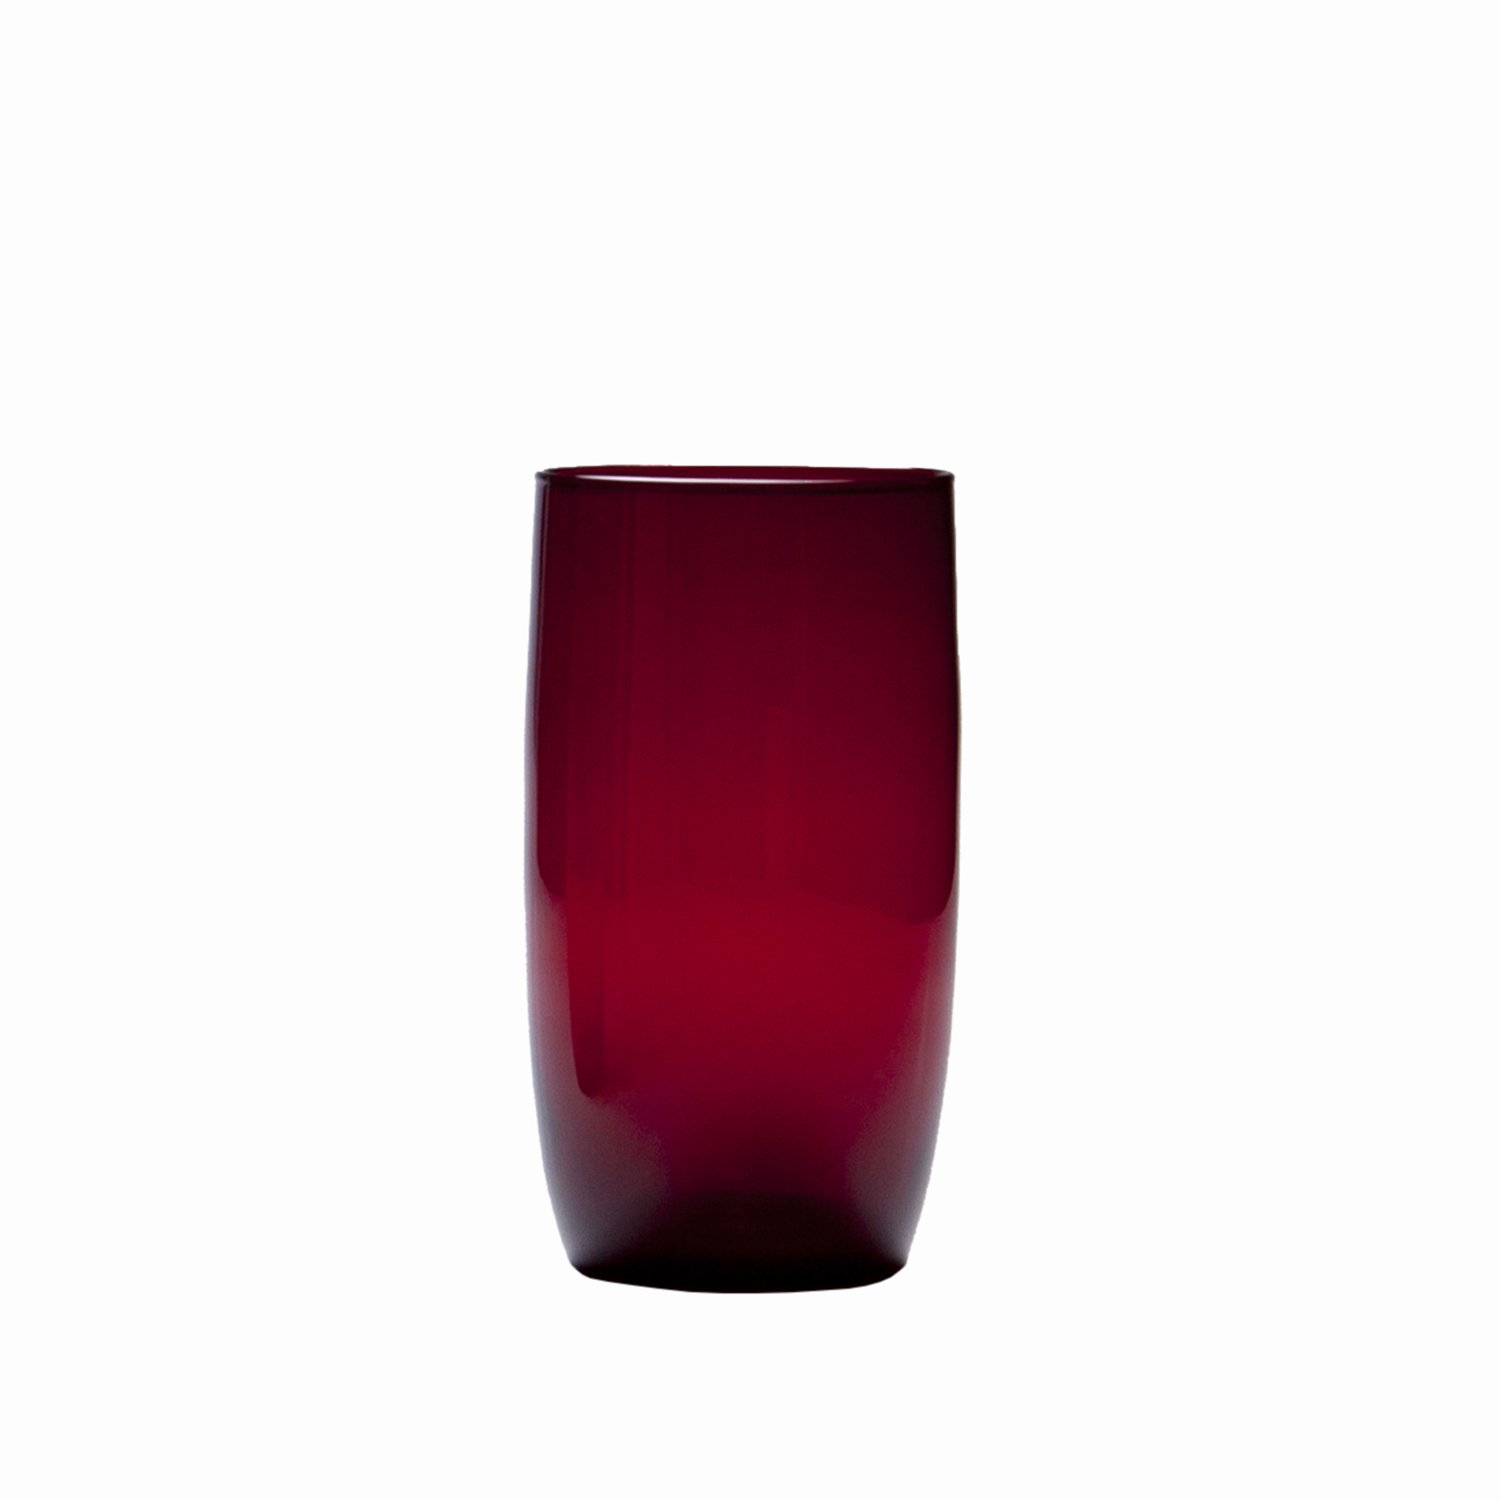 D&V Glass Gala Collection Iced Beverage/Cocktail Glass 19 Ounce, Ruby Red, Set of 12